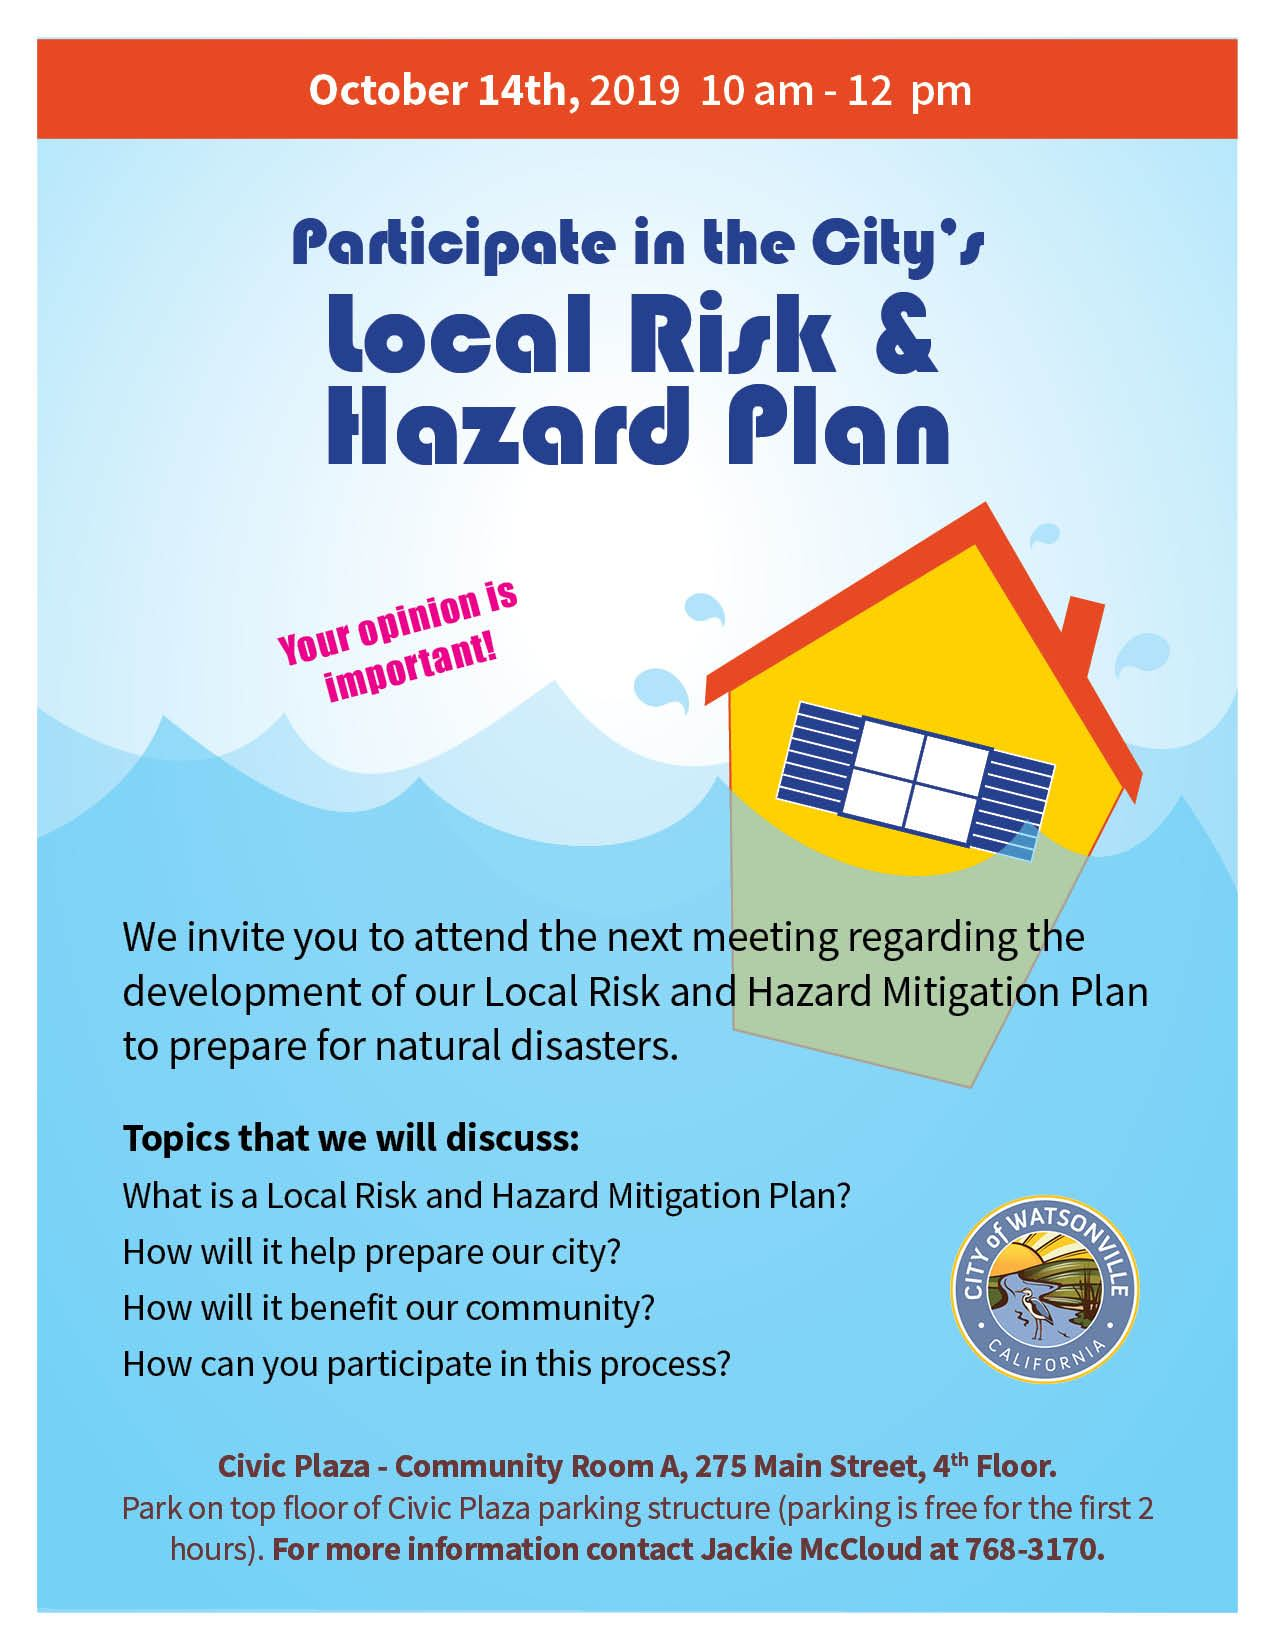 Local Risk & Hazard Plan - Public Meeting October 14th